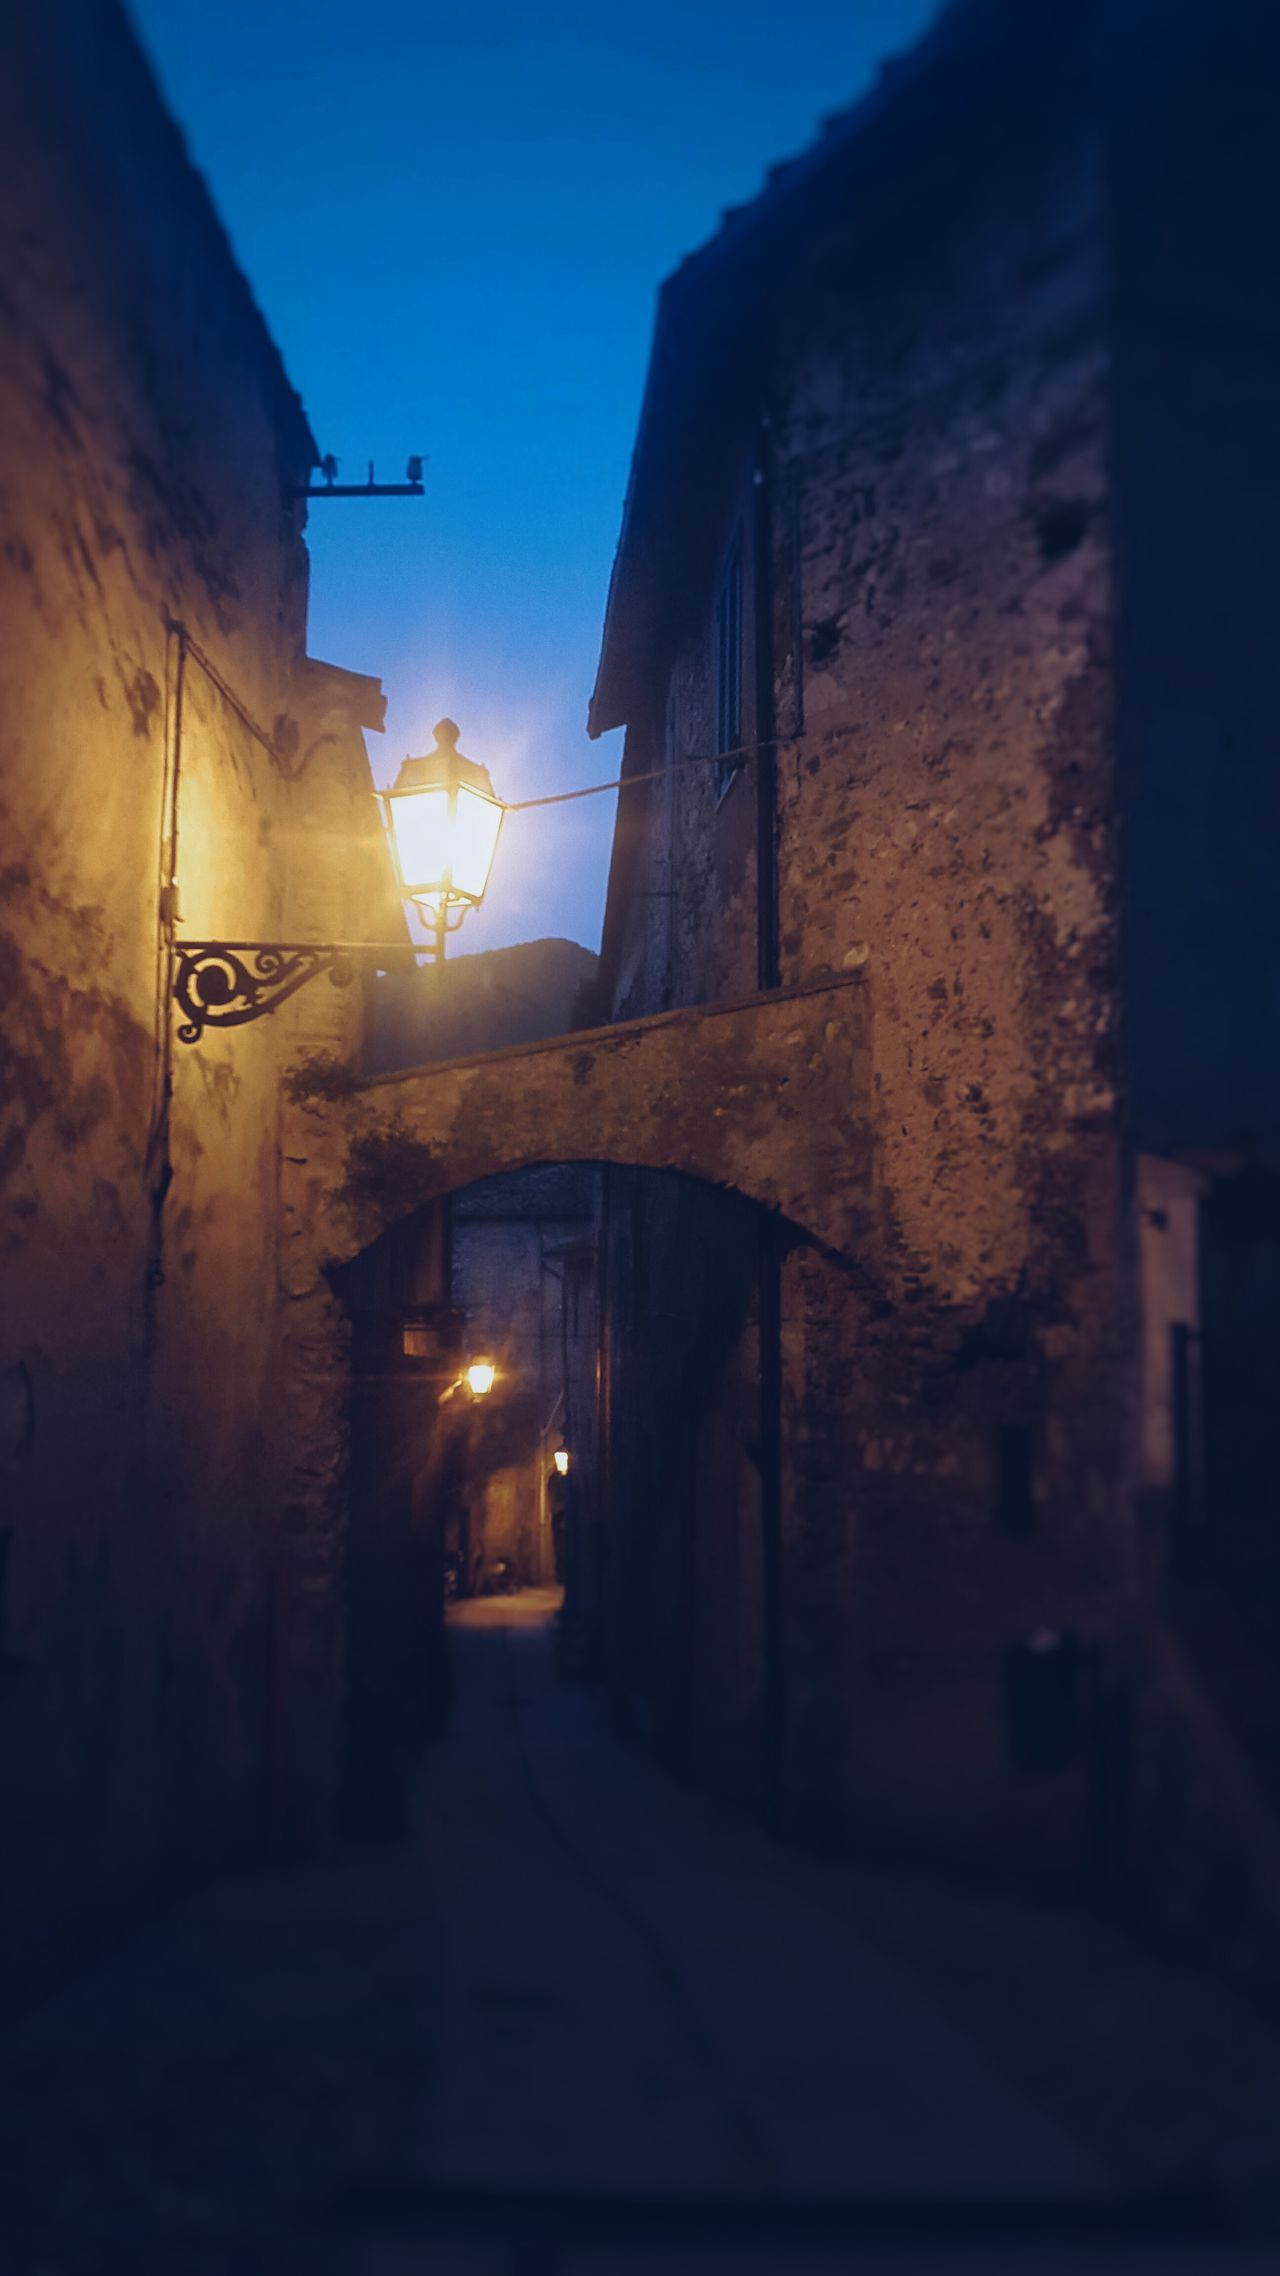 Night Architecture Illuminated Built Structure No People Building Exterior Street Light Outdoors Sky Umbria